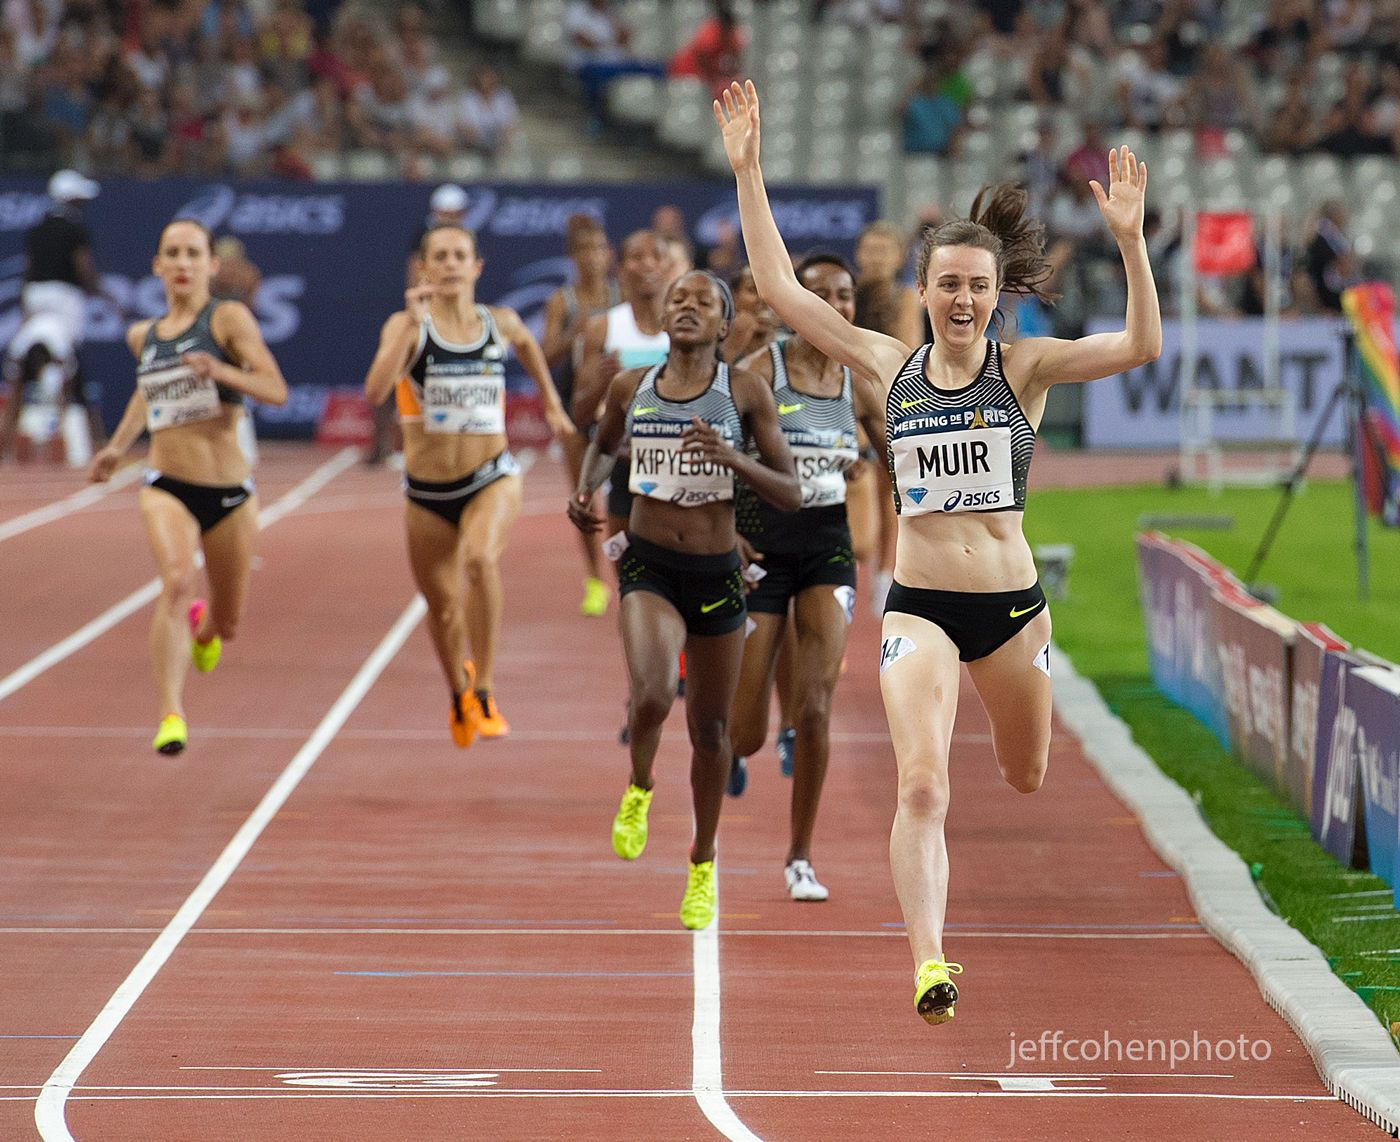 1r2016_meeting_de_paris_laura_muir_1500m_jeff_cohen_photo_4467_web.jpg